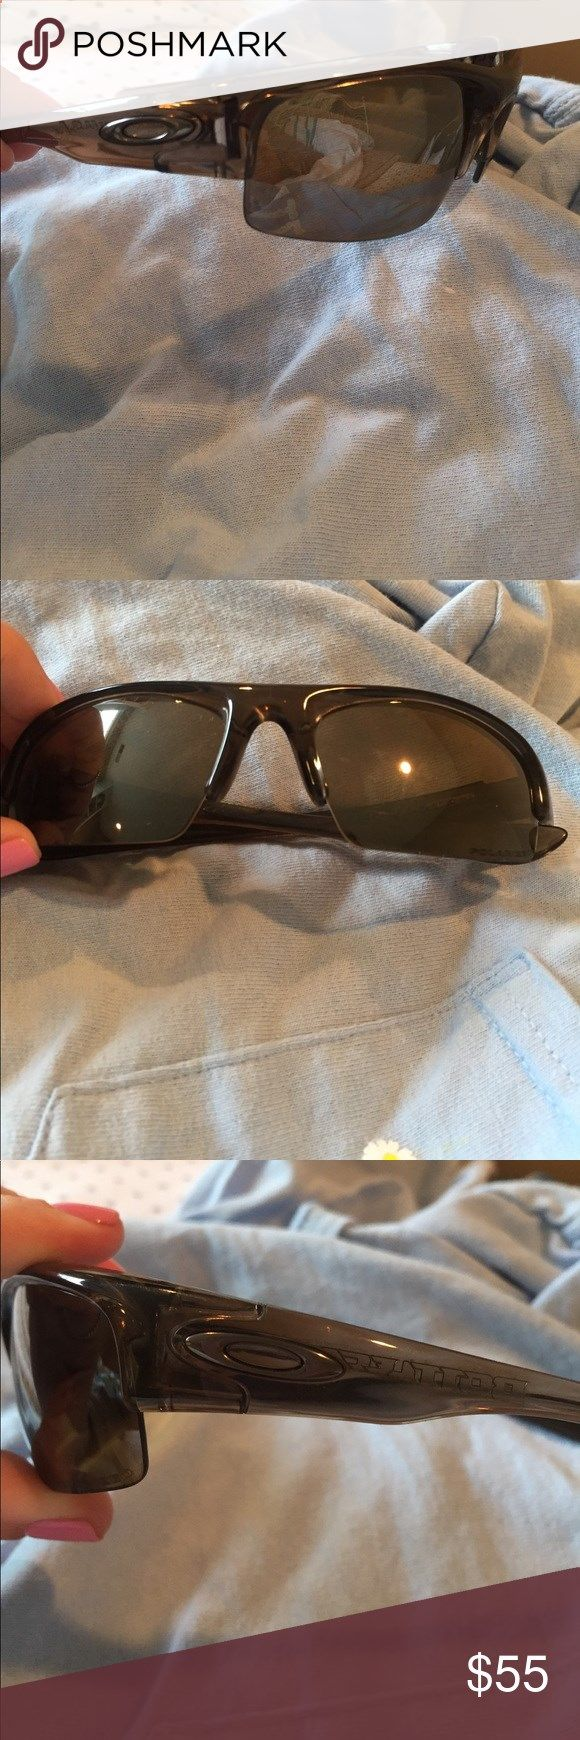 Mens Brown Oakley Sunglasses great condition, authentic. will come in a raybans case Oakley Accessories Sunglasses